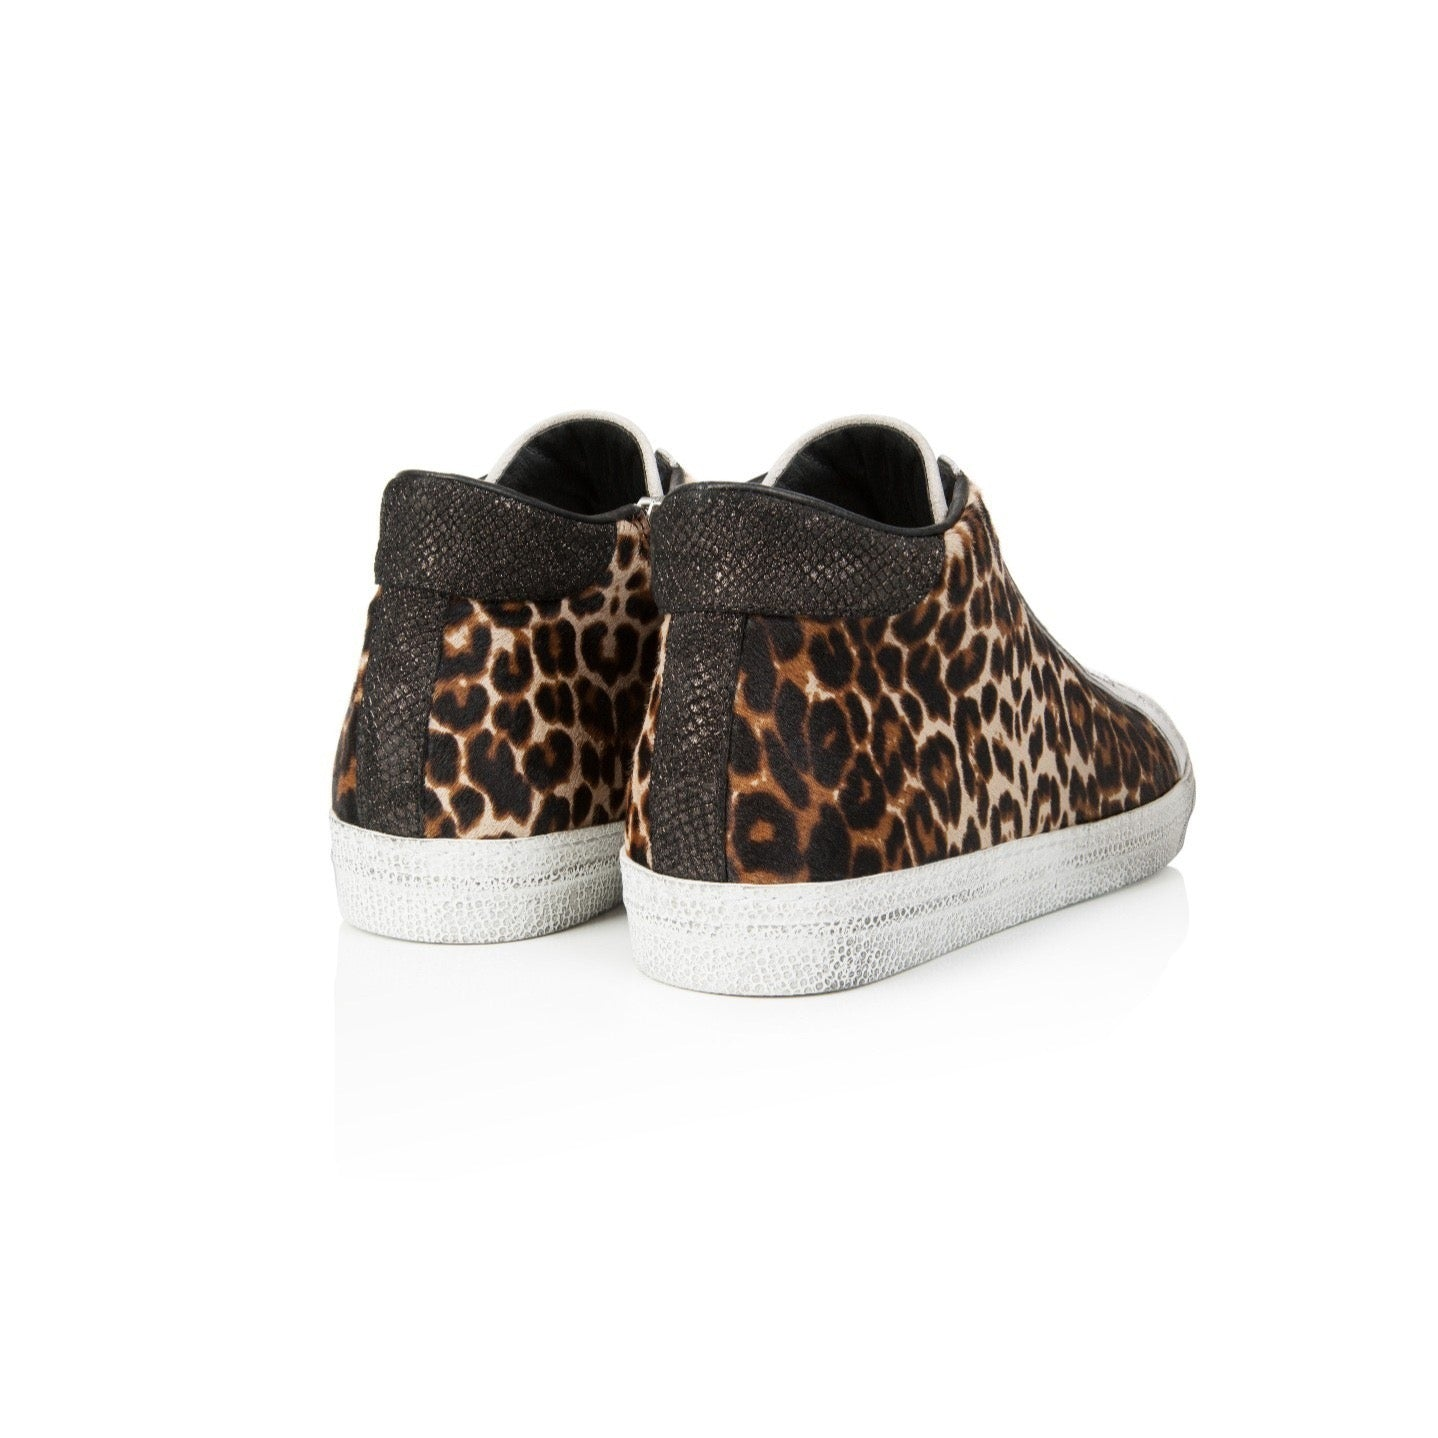 ALTO: LEOPARD PRINT LEATHER HIGH TOP TRAINER